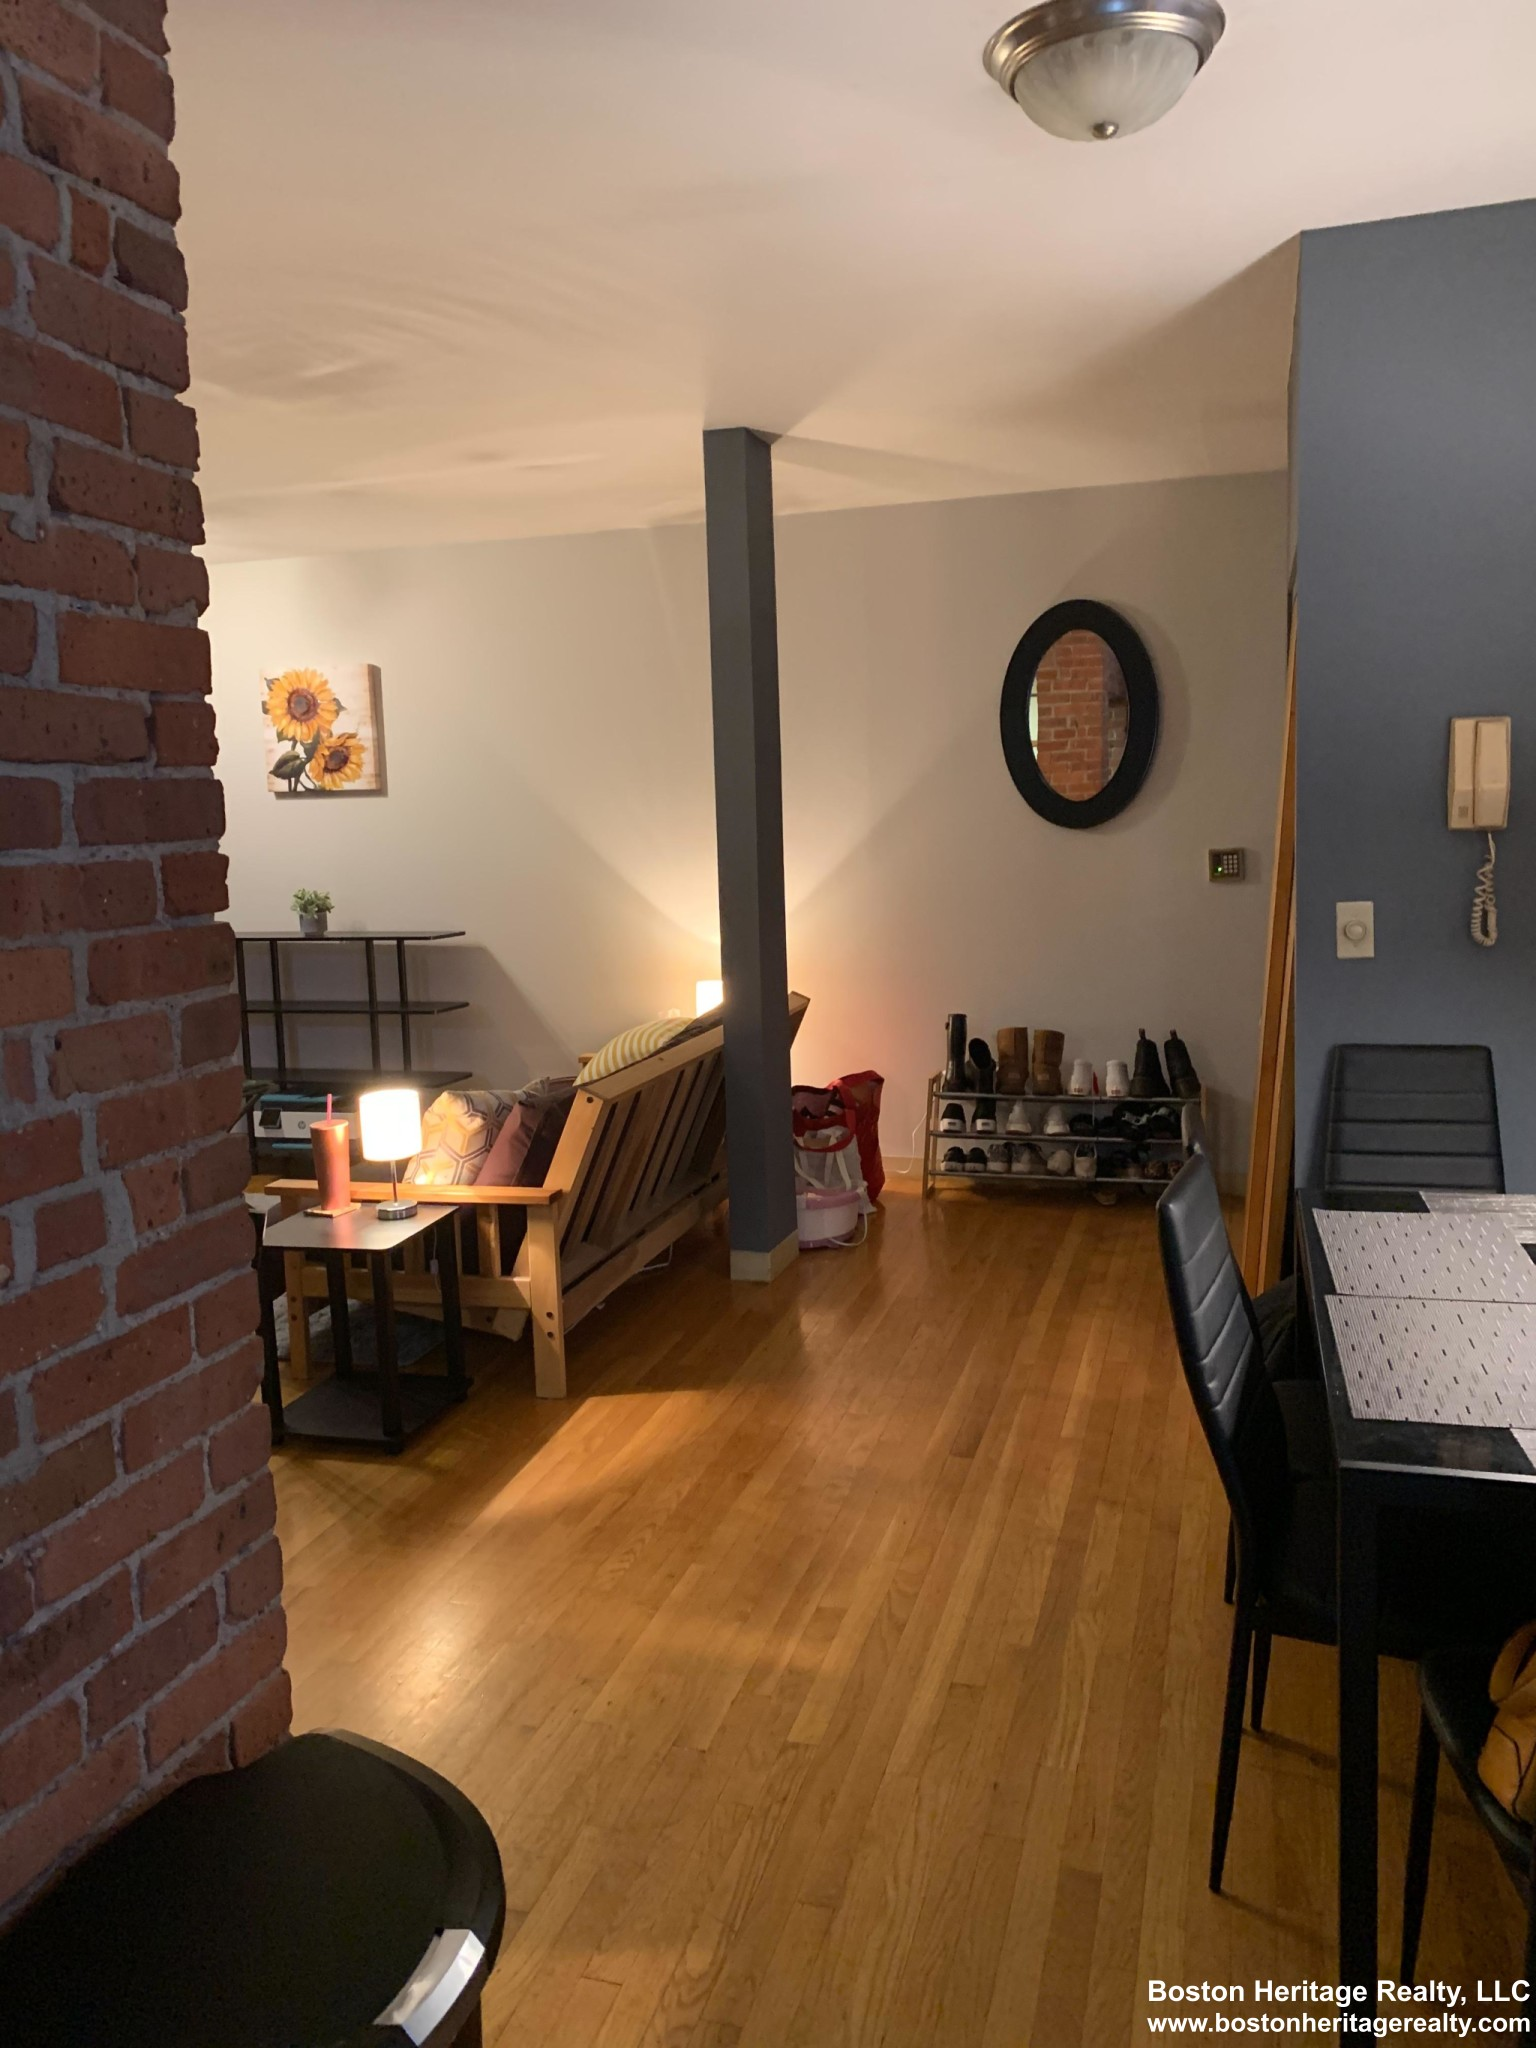 2 Beds, 1 Bath apartment in Boston, Fenway for $3,000